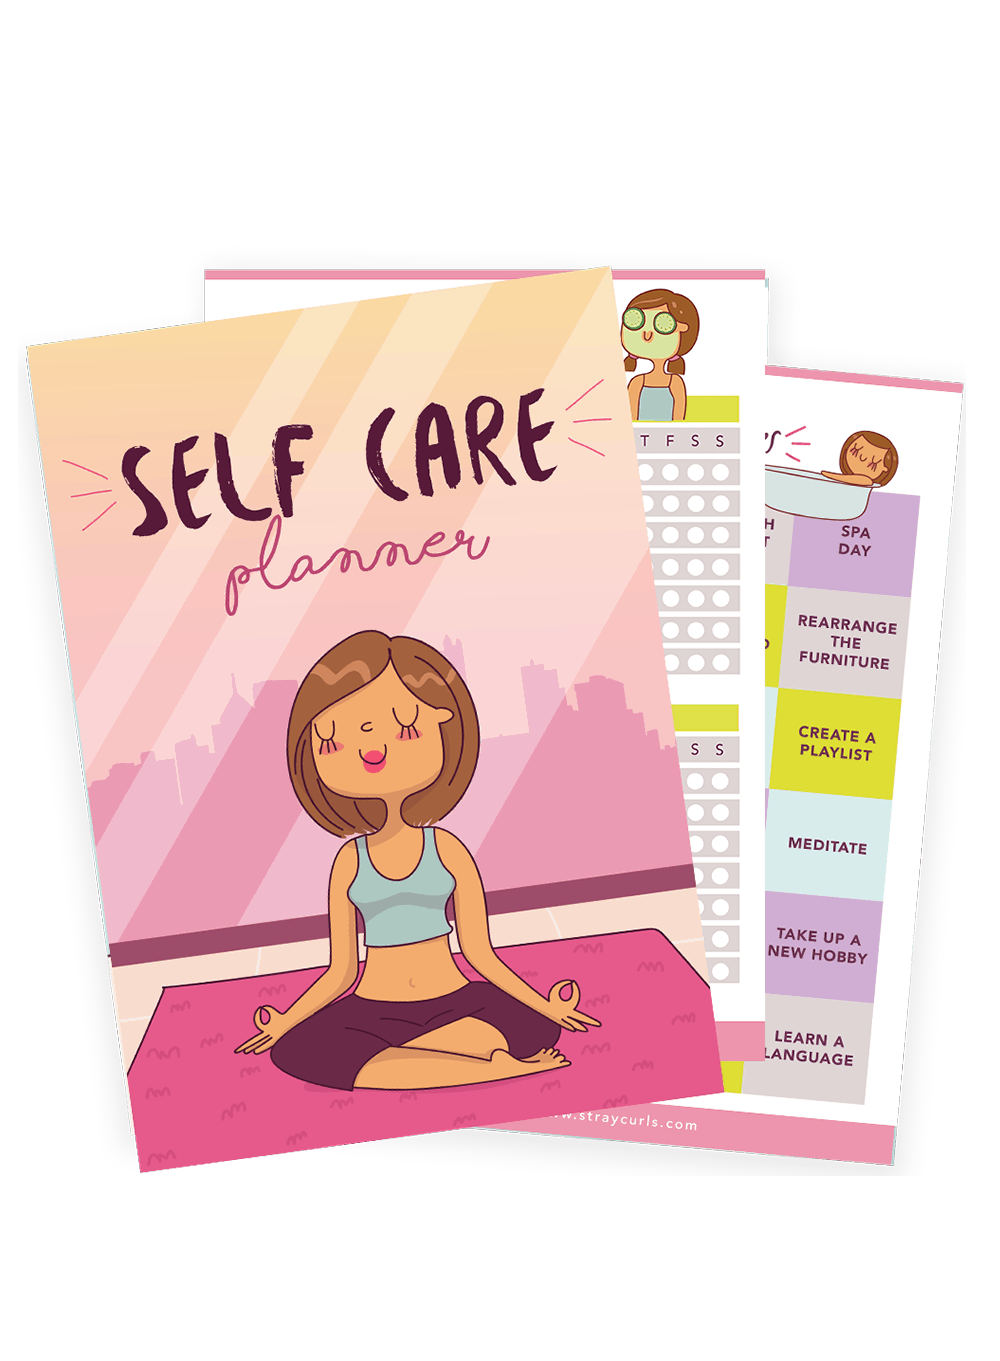 The Ultimate Self Care Planner to help you become a better version of you! Includes a meal tracker, period tracker, and loads of self care tips!